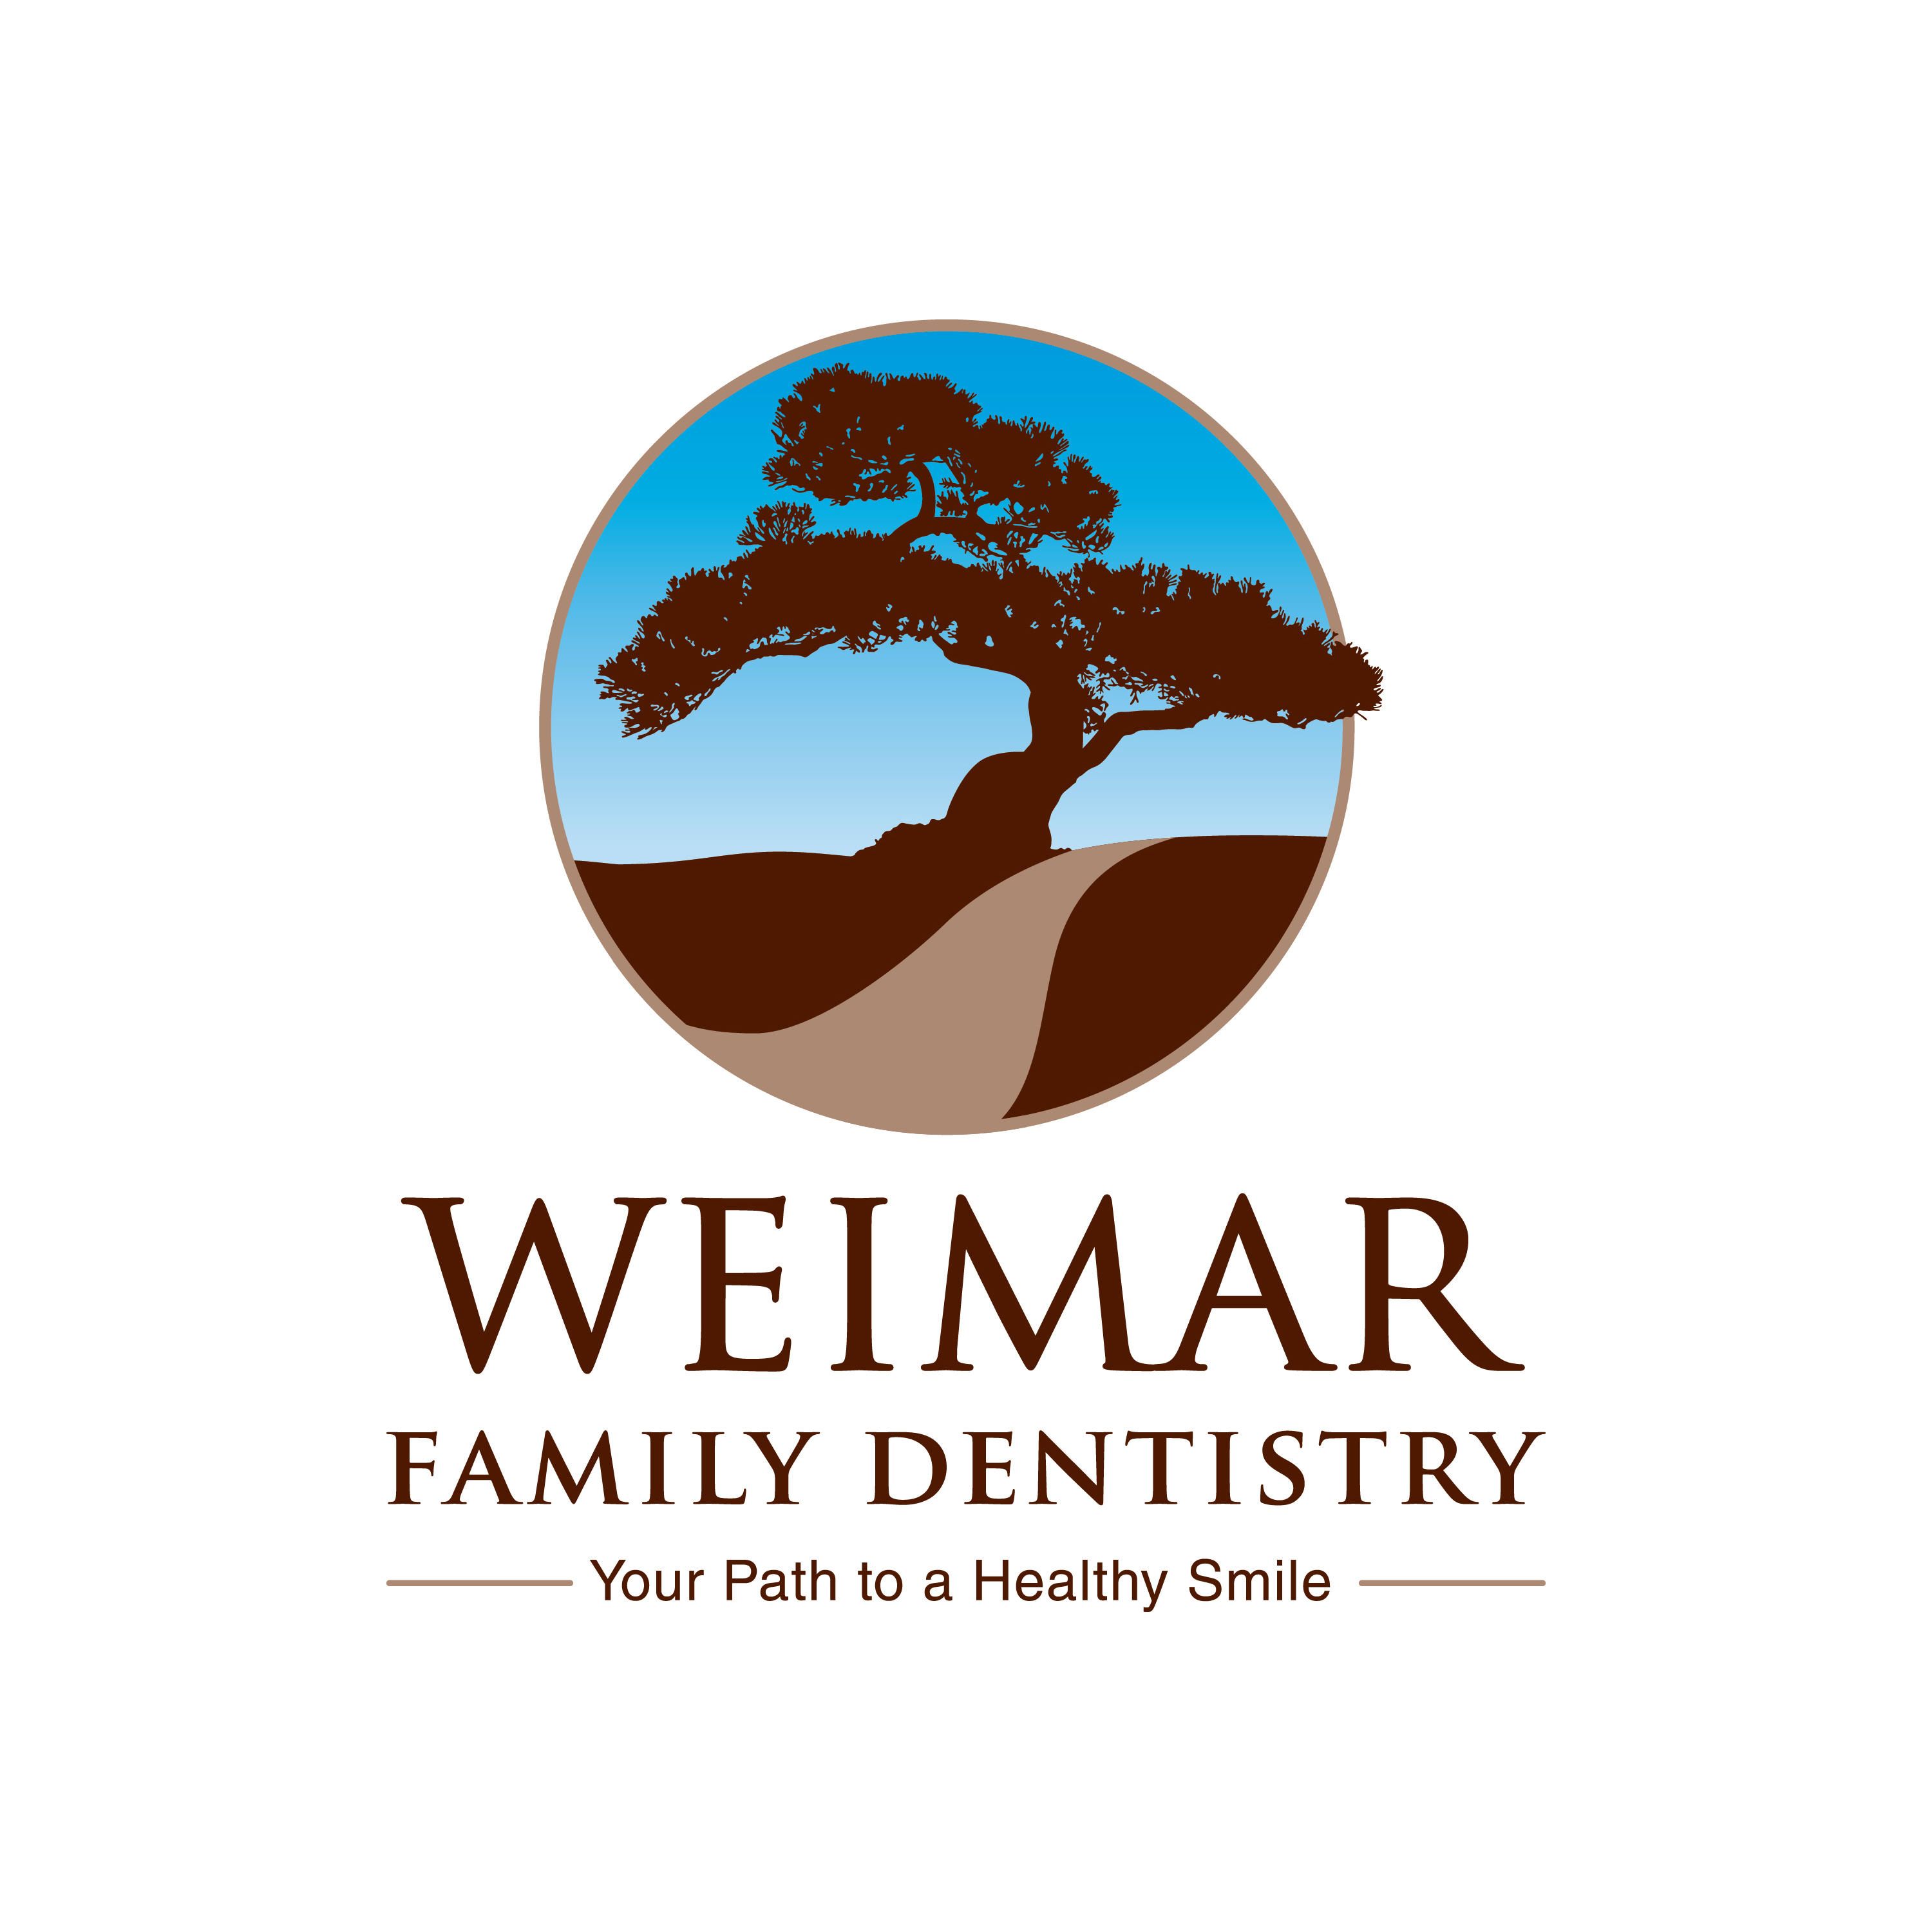 Weimar Family Dentistry